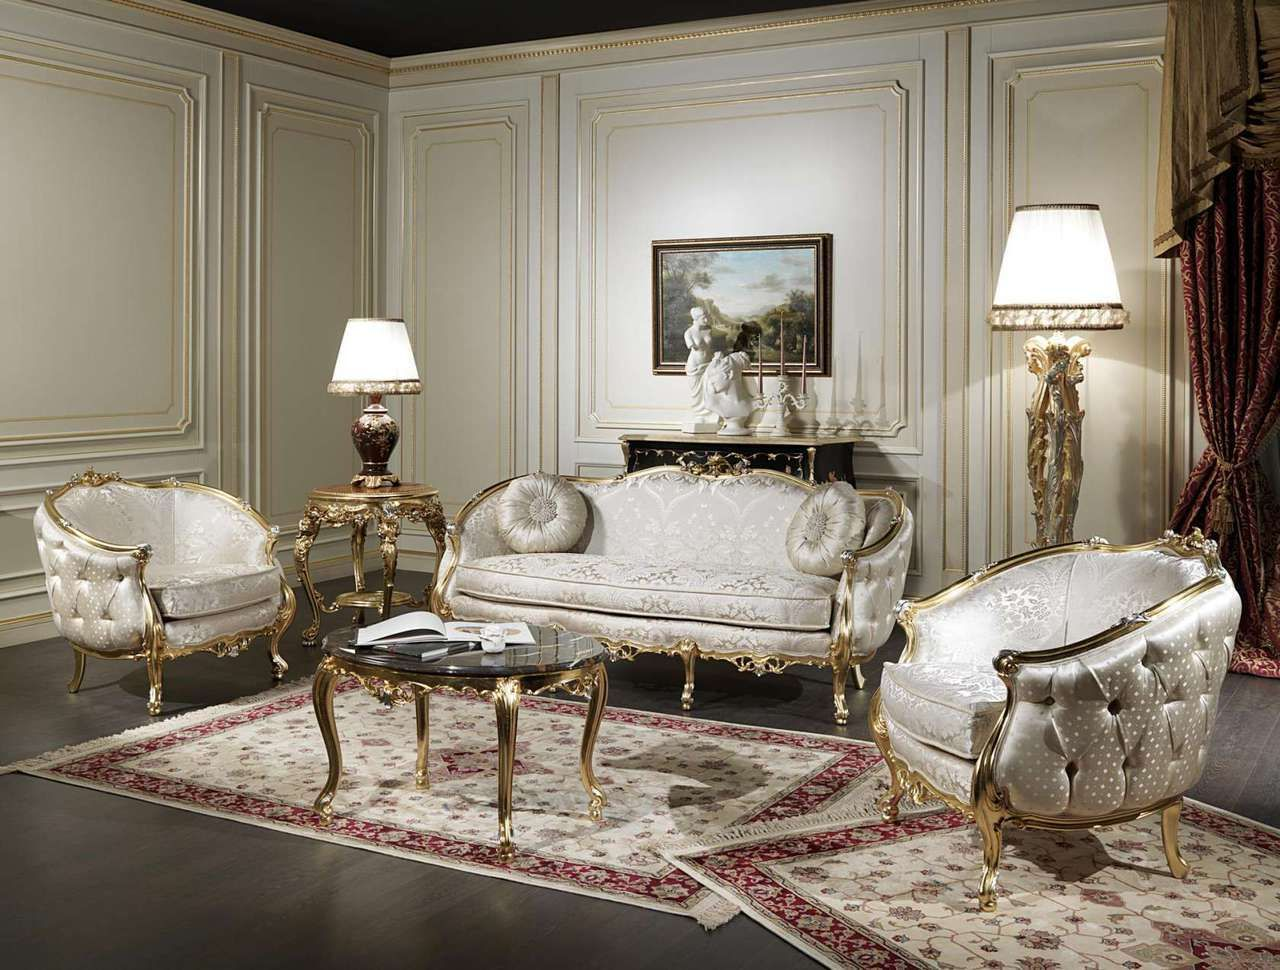 Fabulous living room sets for you to choose from our luxury furniture store online venesia classic